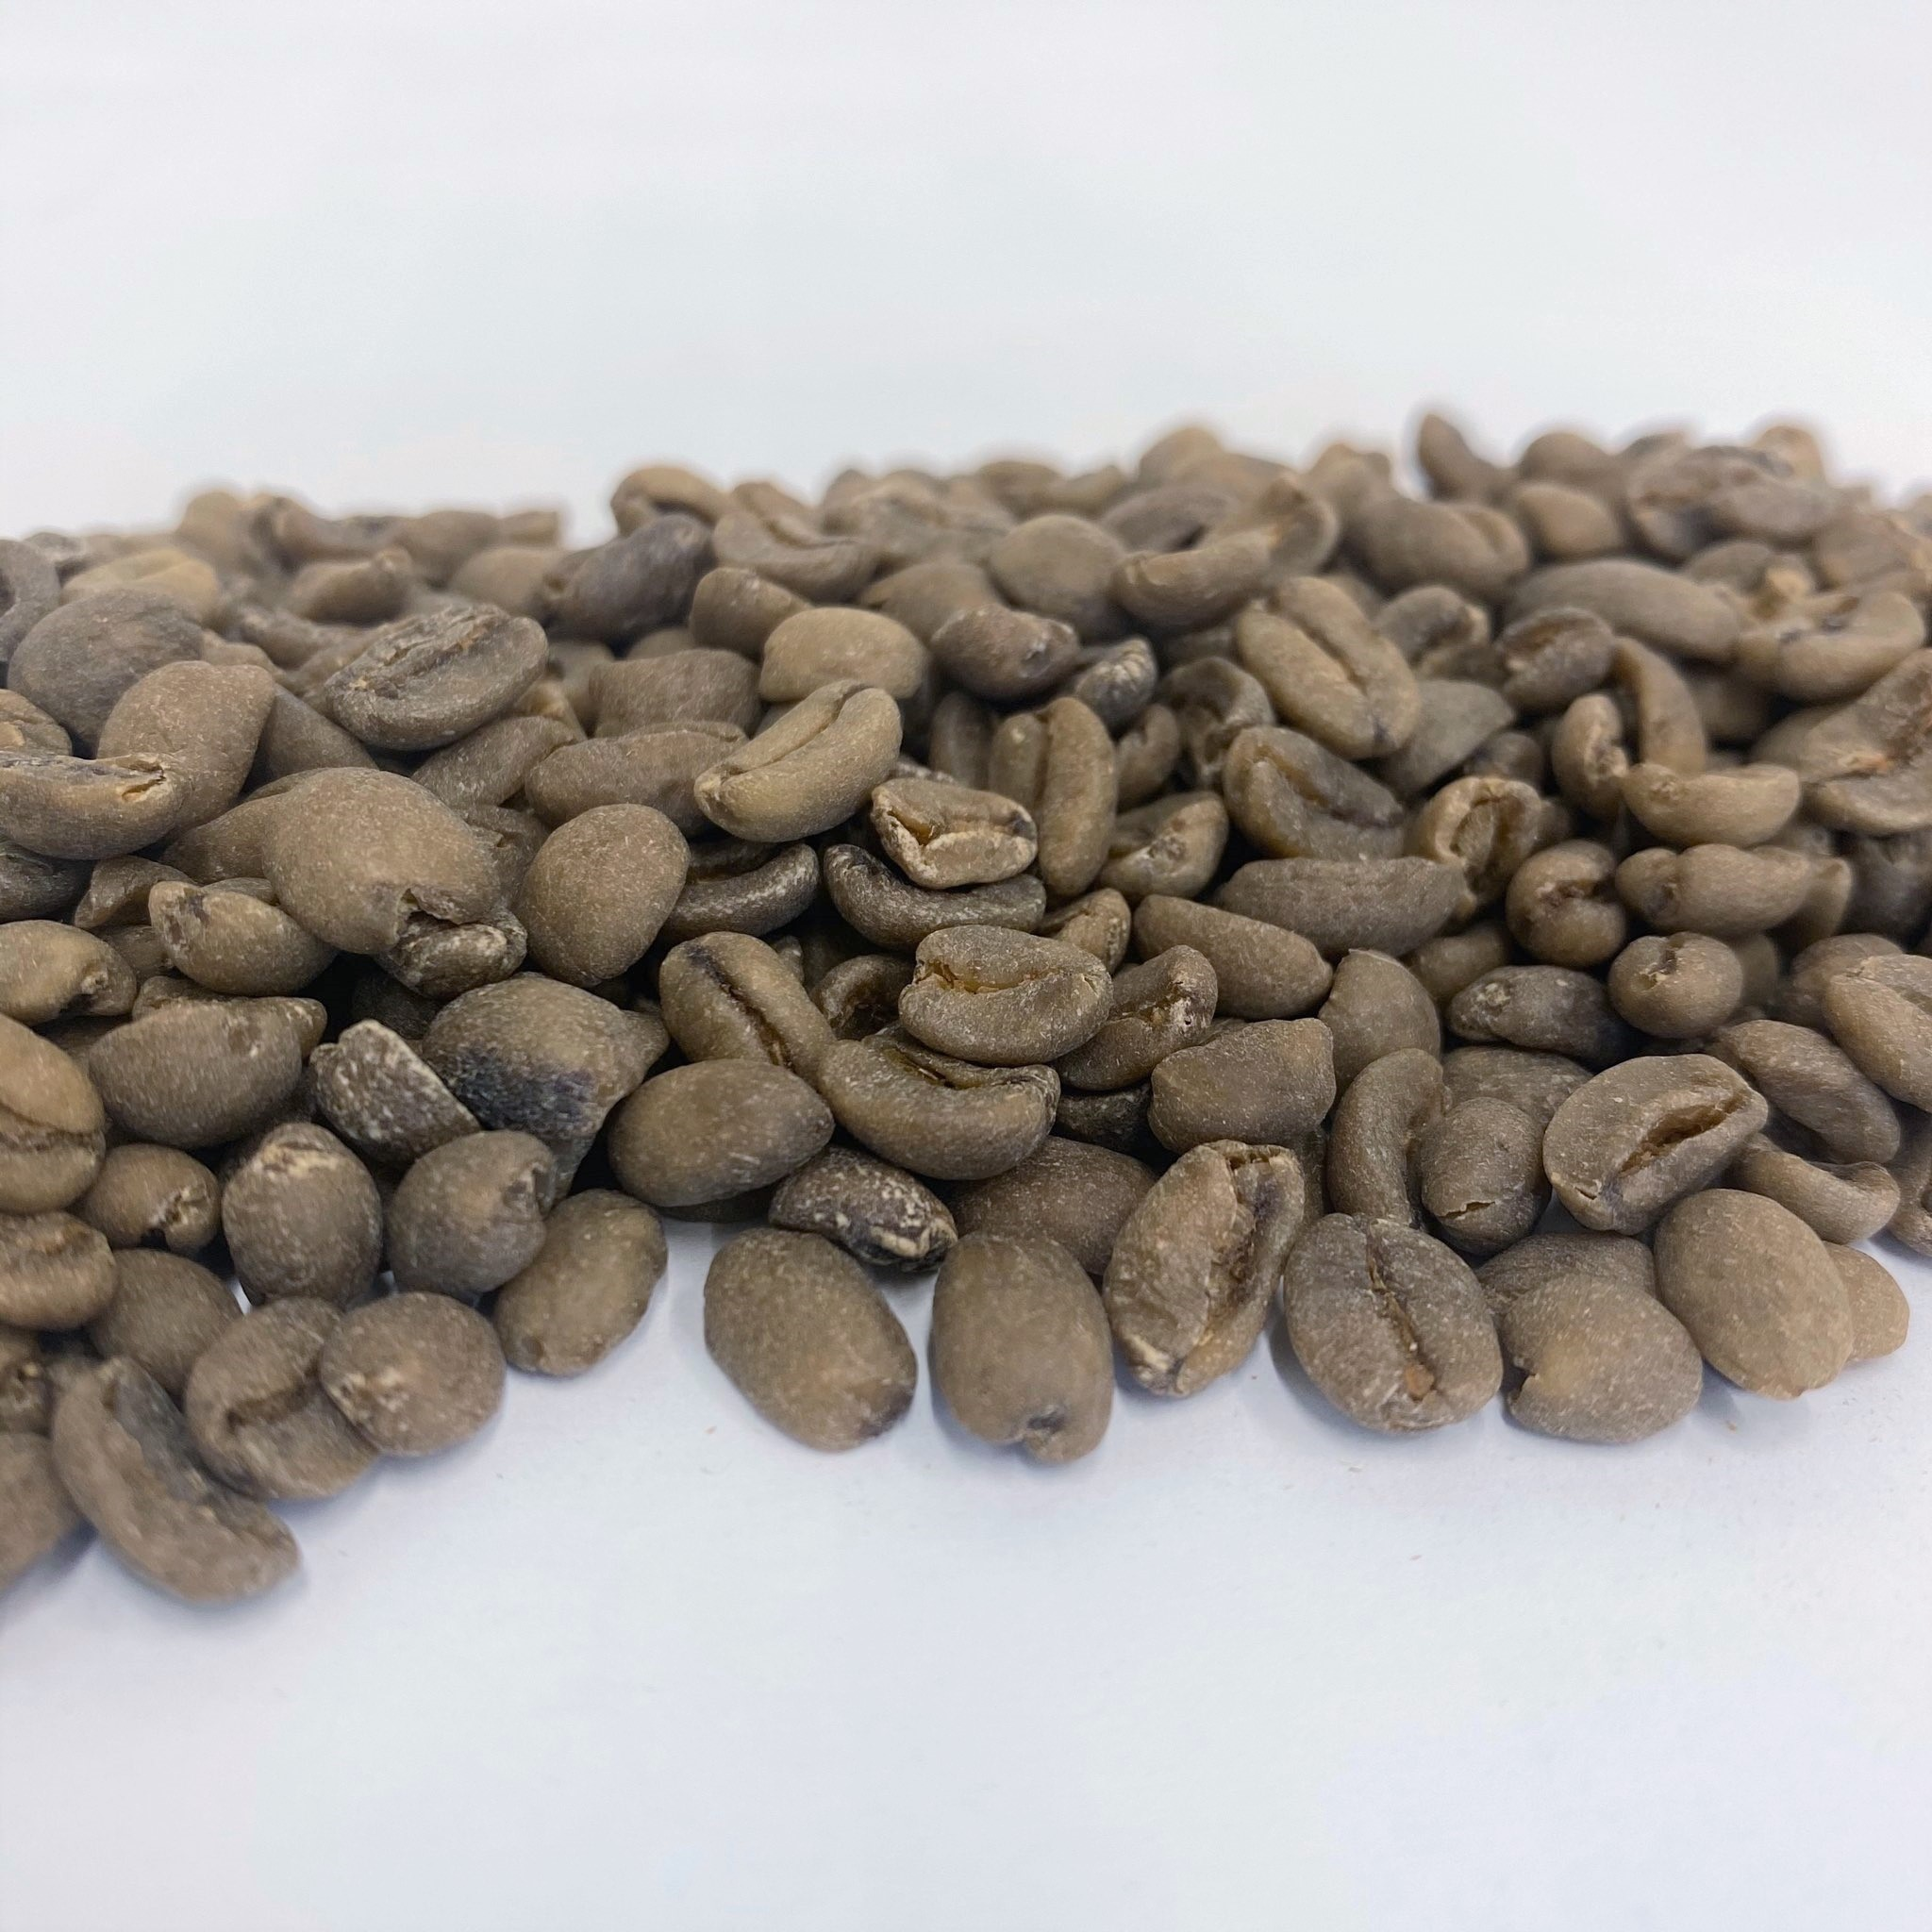 Morning Glory Organic Decaf Blend SWP